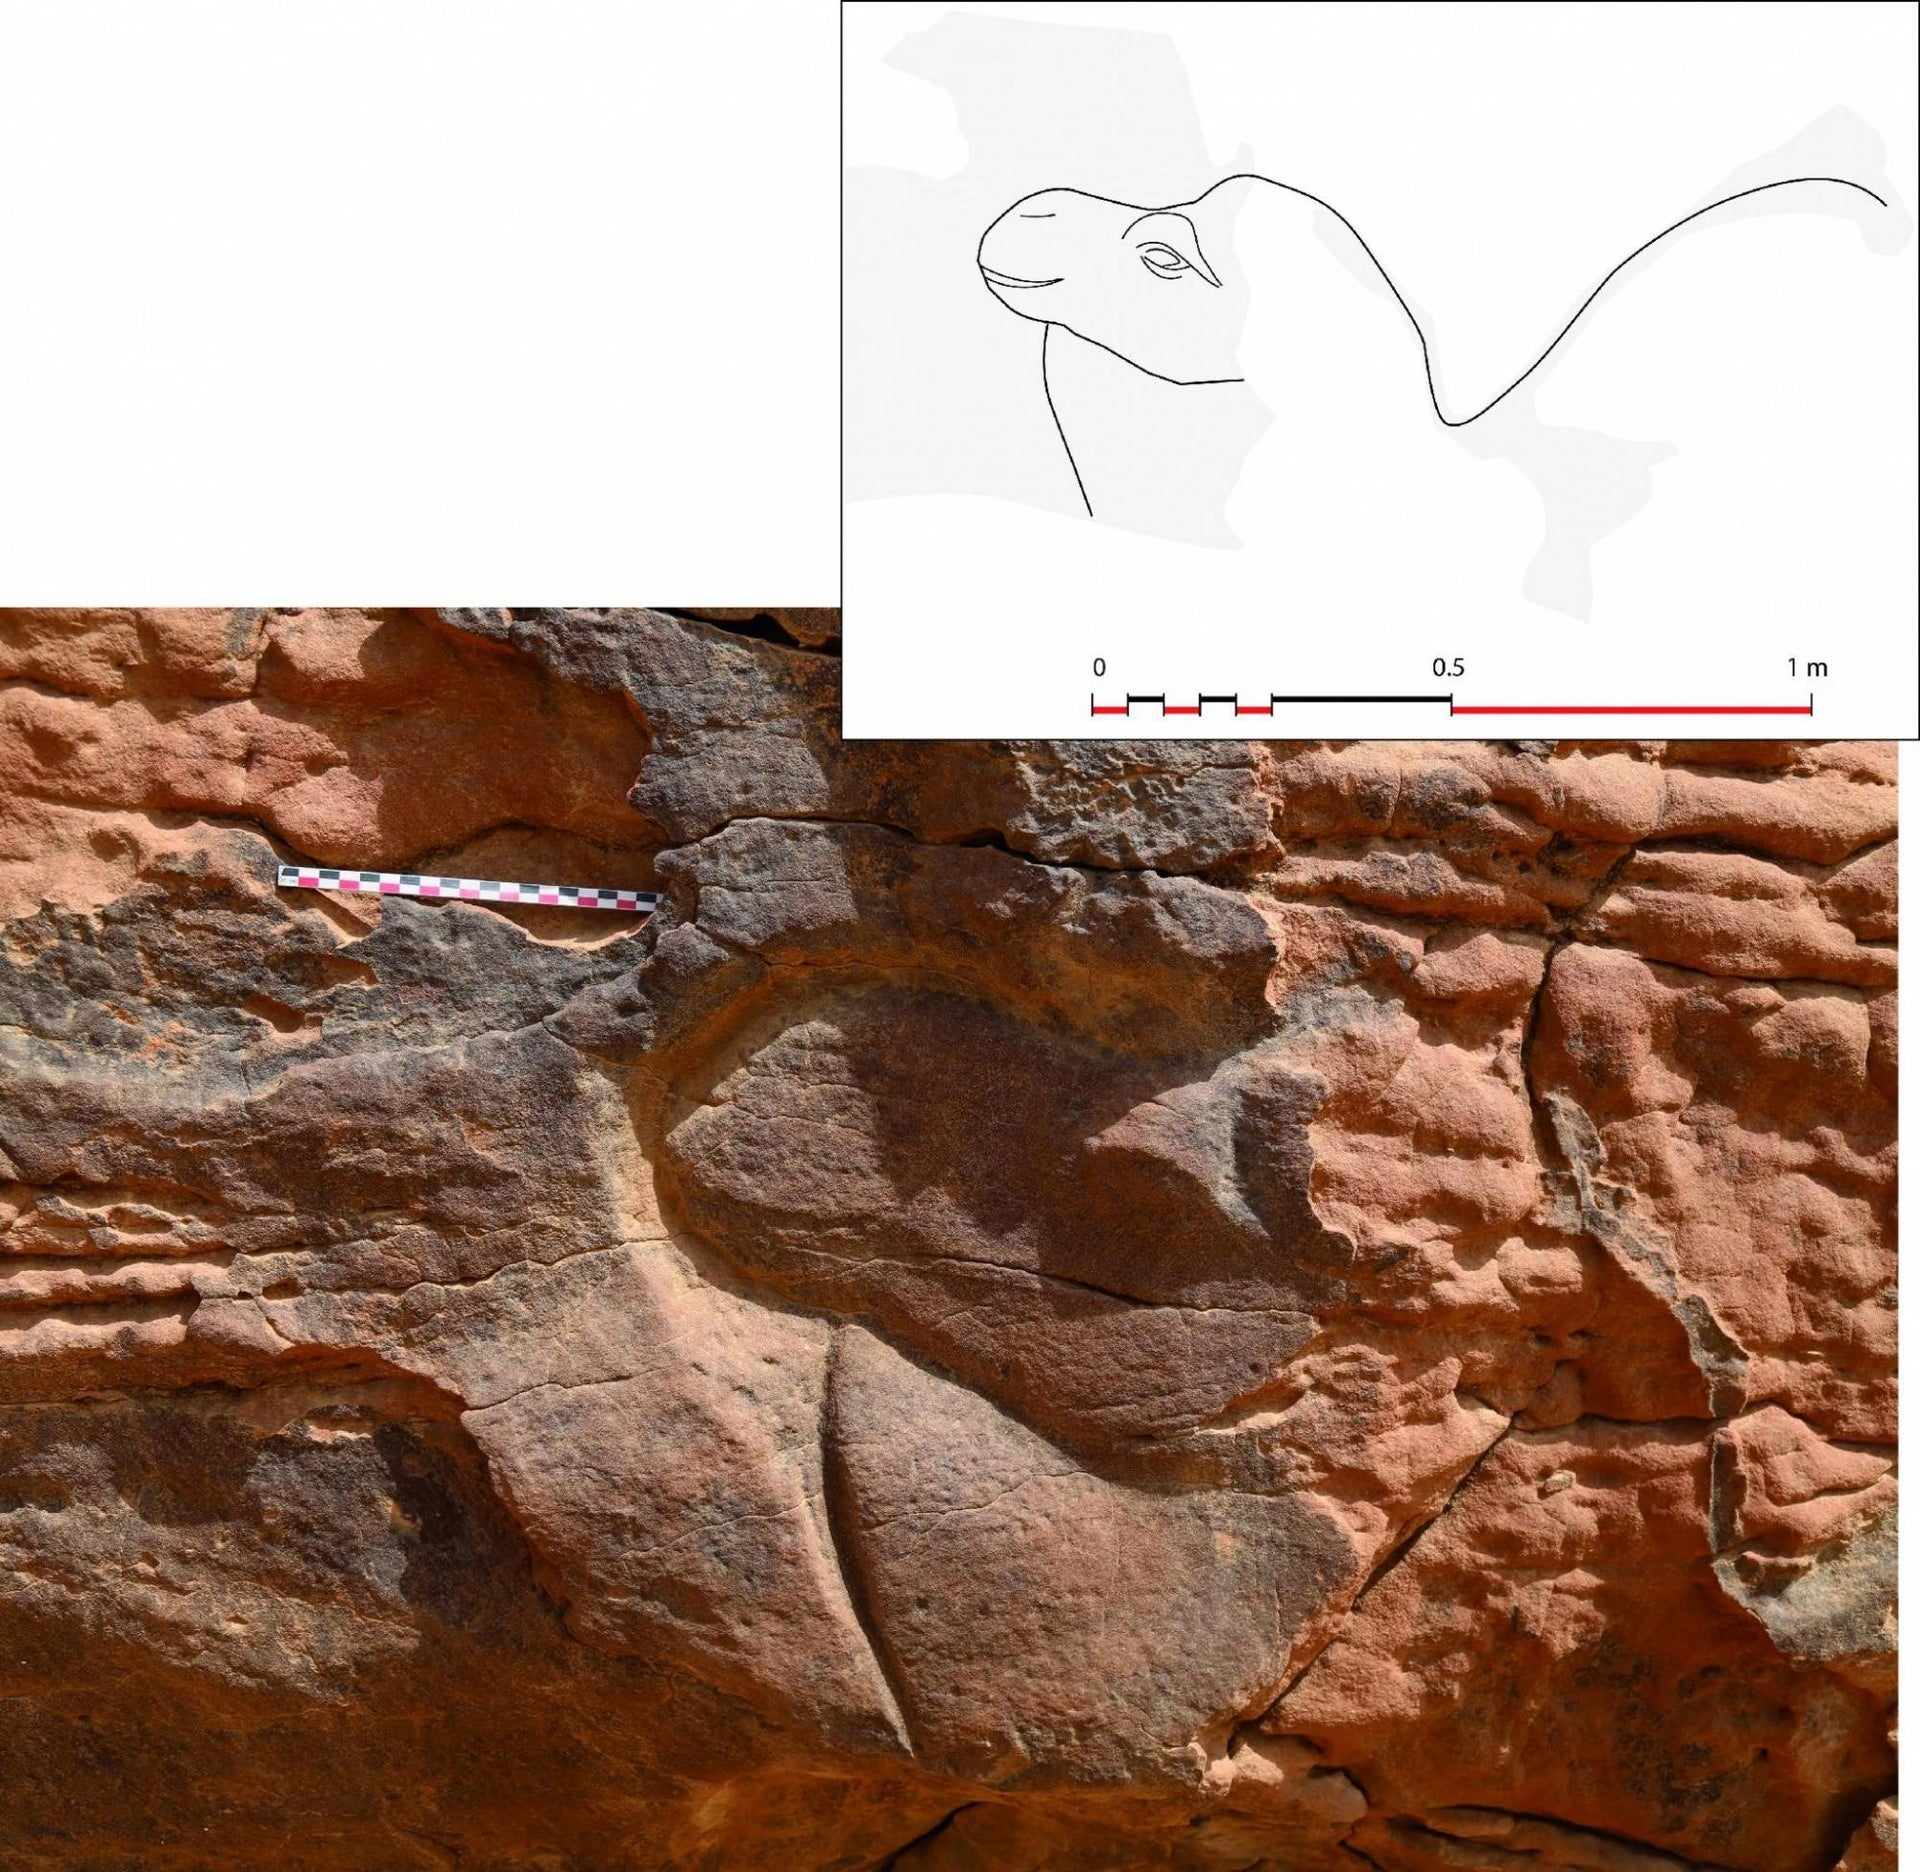 Bas-relief of dromedary head, among the roughly 12 life-size depictions of camels found at Al Jawf, Saudi Arabia, which seem to date to about 2,000 years ago.